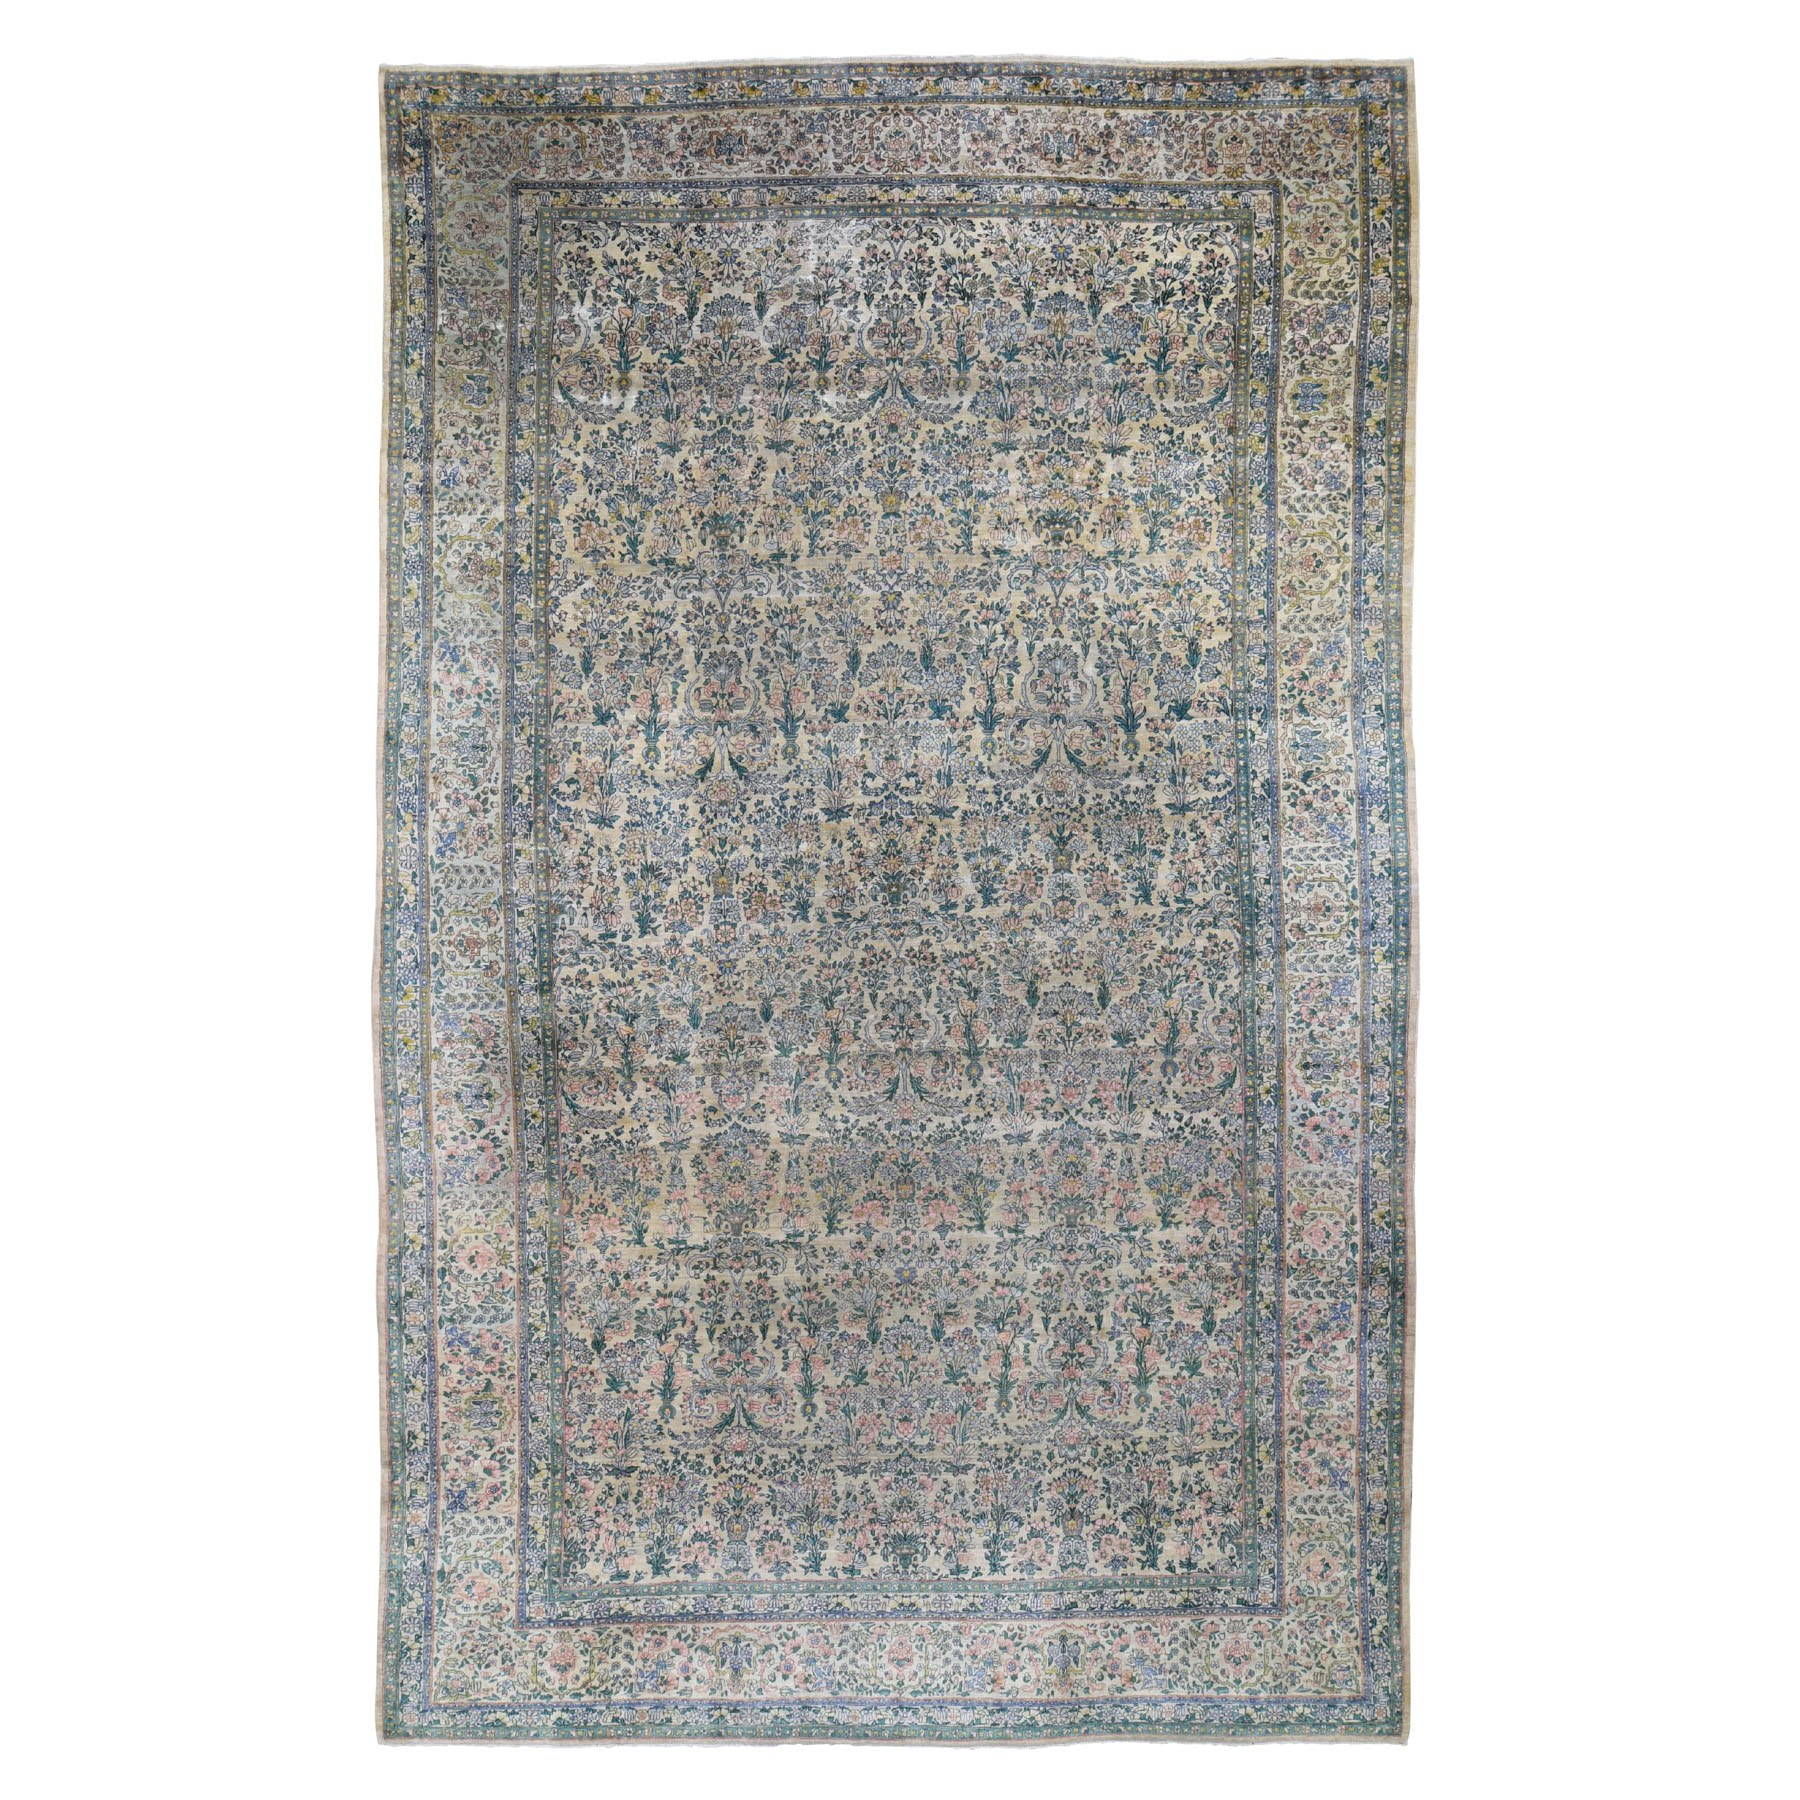 9'X16' Gallery Size Antique Persian Kerman Even Wear Hand Knotted Oriental Rug moad8d60